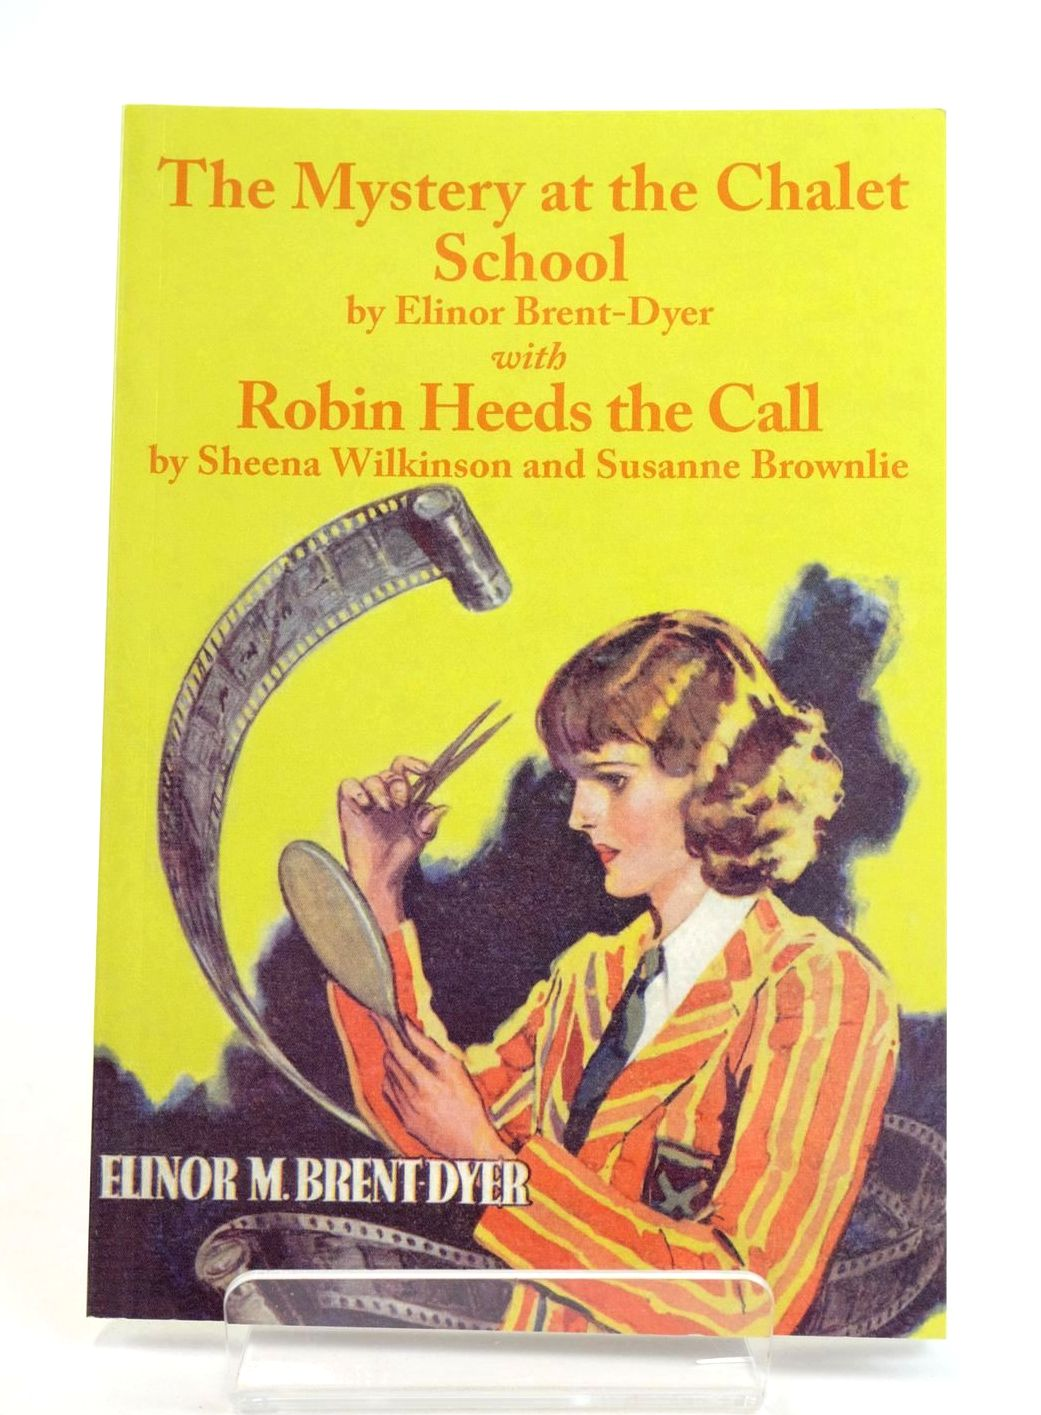 Photo of THE MYSTERY AT THE CHALET SCHOOL WITH ROBIN HEEDS THE CALL written by Brent-Dyer, Elinor M. Wilkinson, Sheena Brownlie, Susanne published by Girls Gone By (STOCK CODE: 1319110)  for sale by Stella & Rose's Books